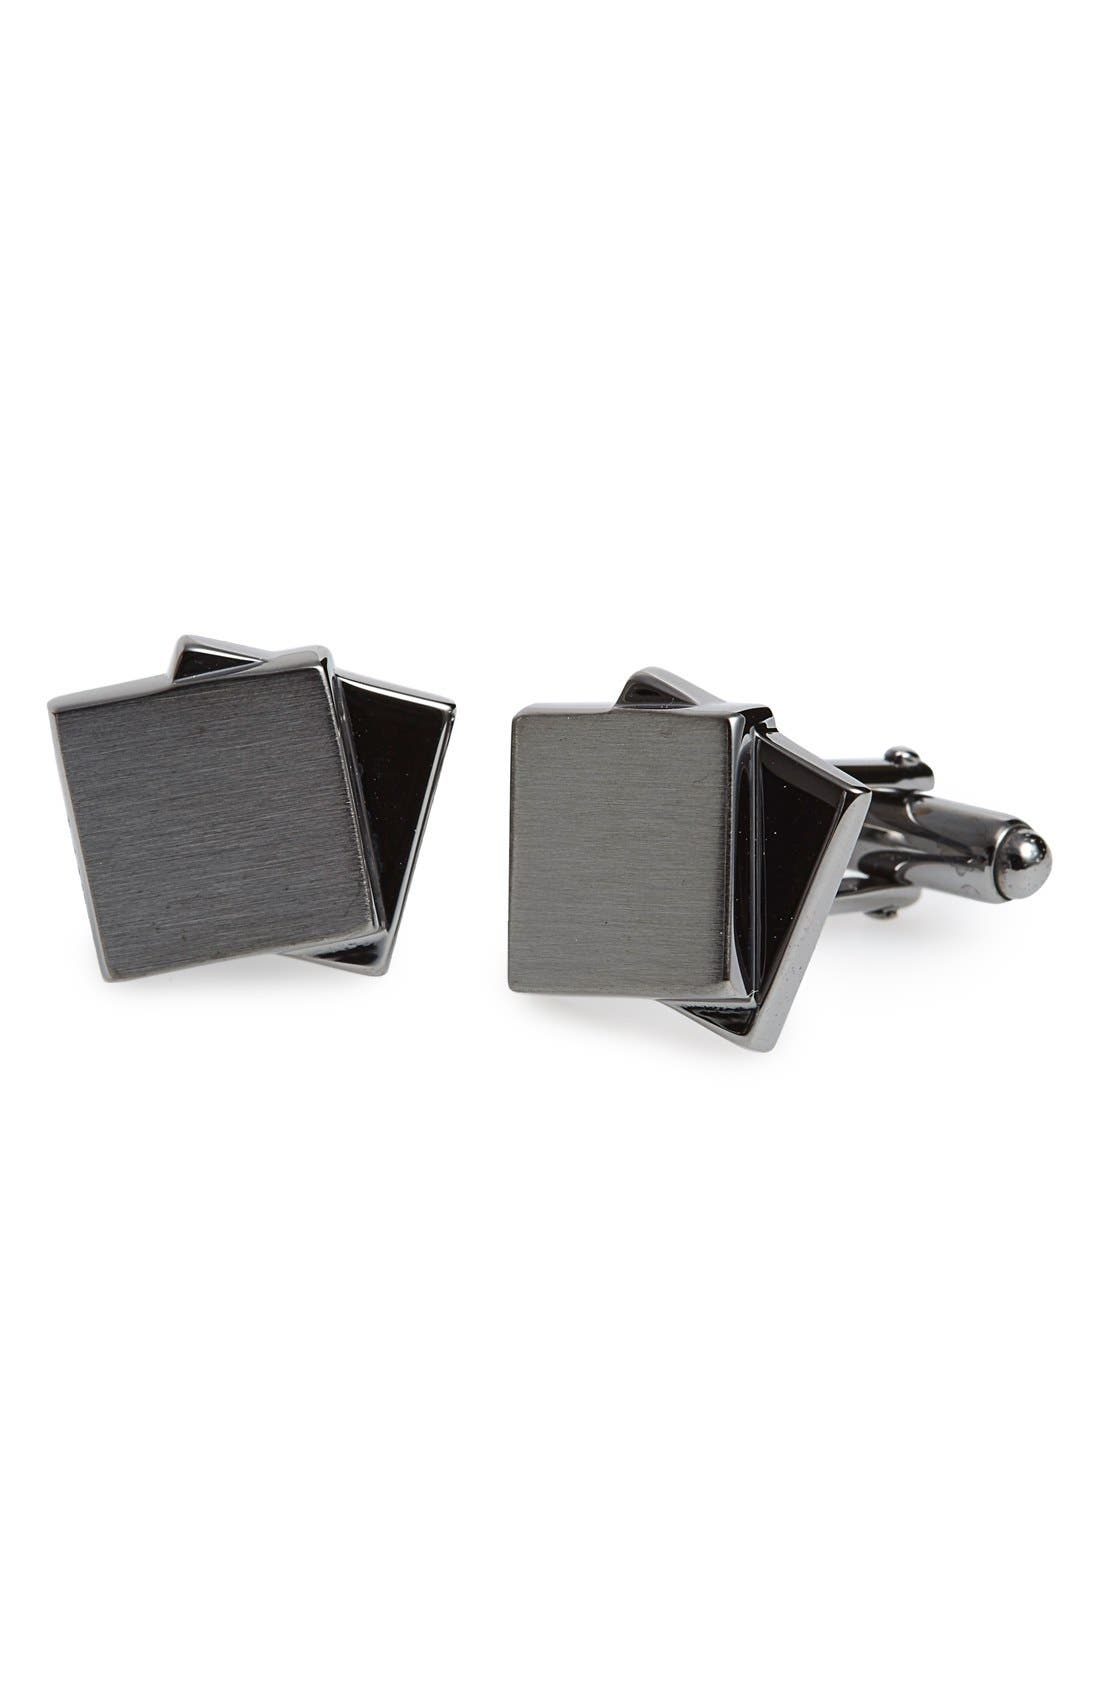 Alternate Image 1 Selected - Lanvin Dual Plaques Cuff Links